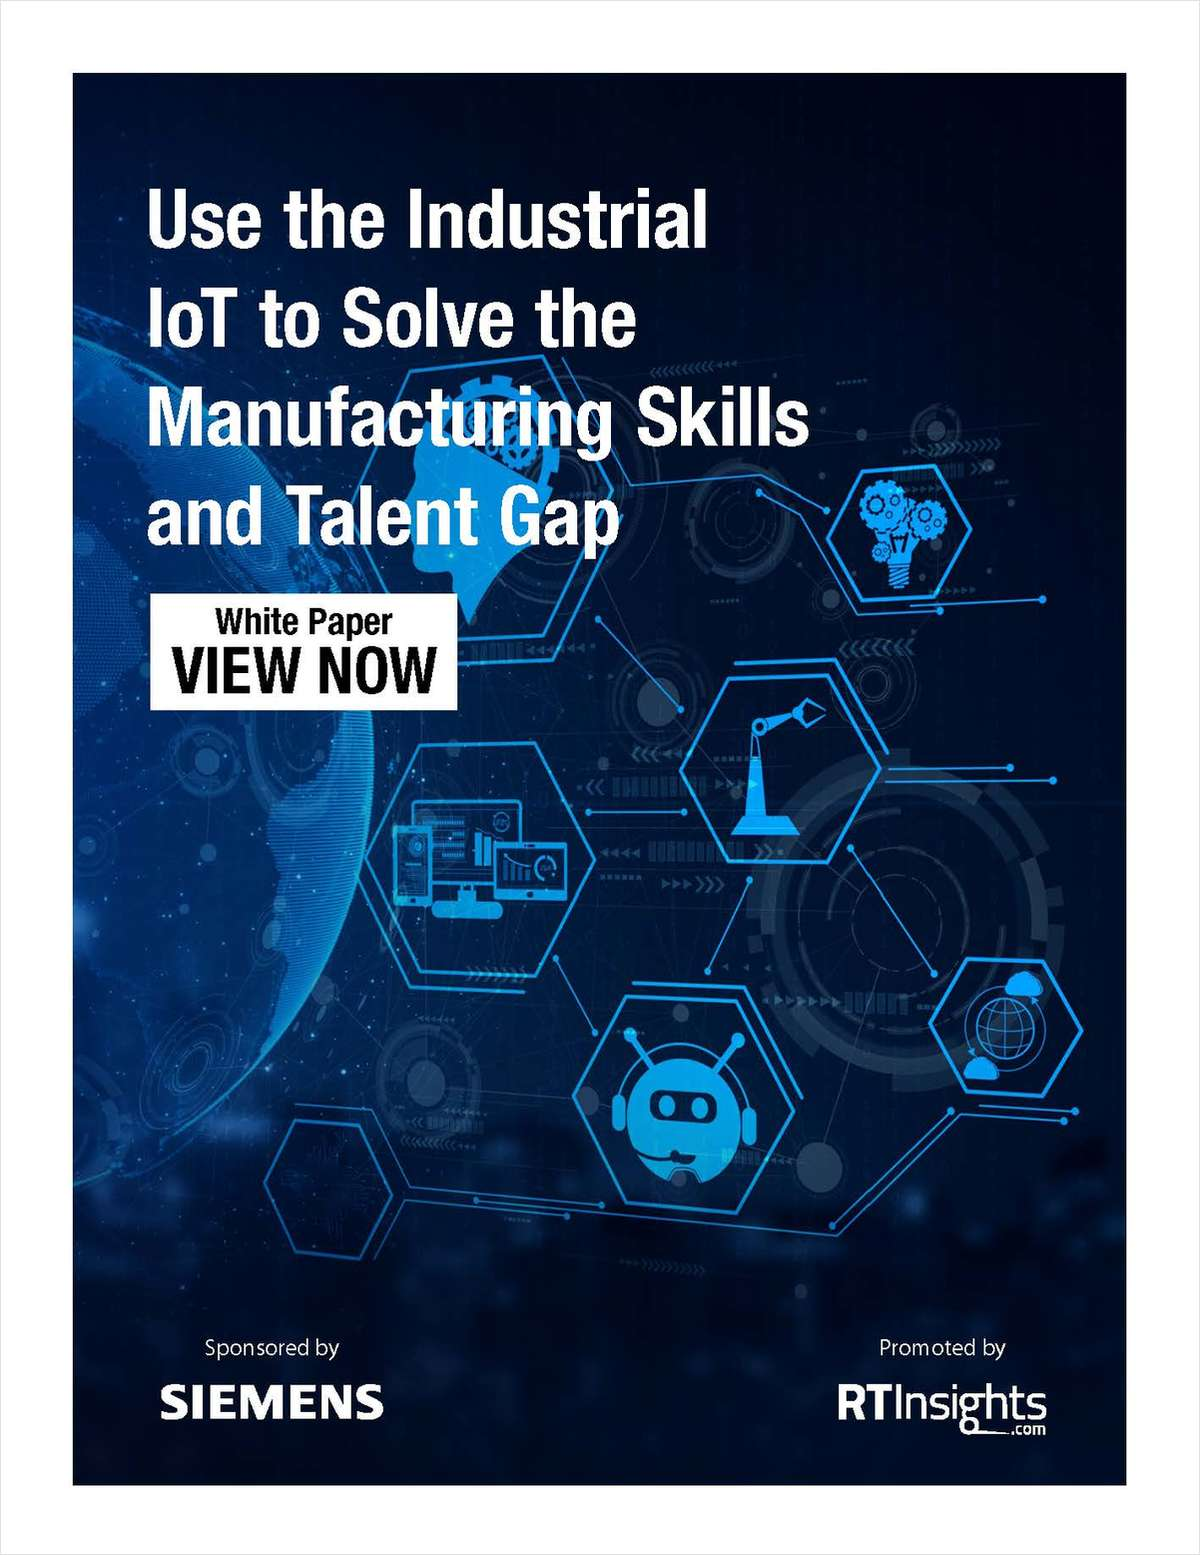 Use the Industrial IoT to Solve the Manufacturing Skills and Talent Gap